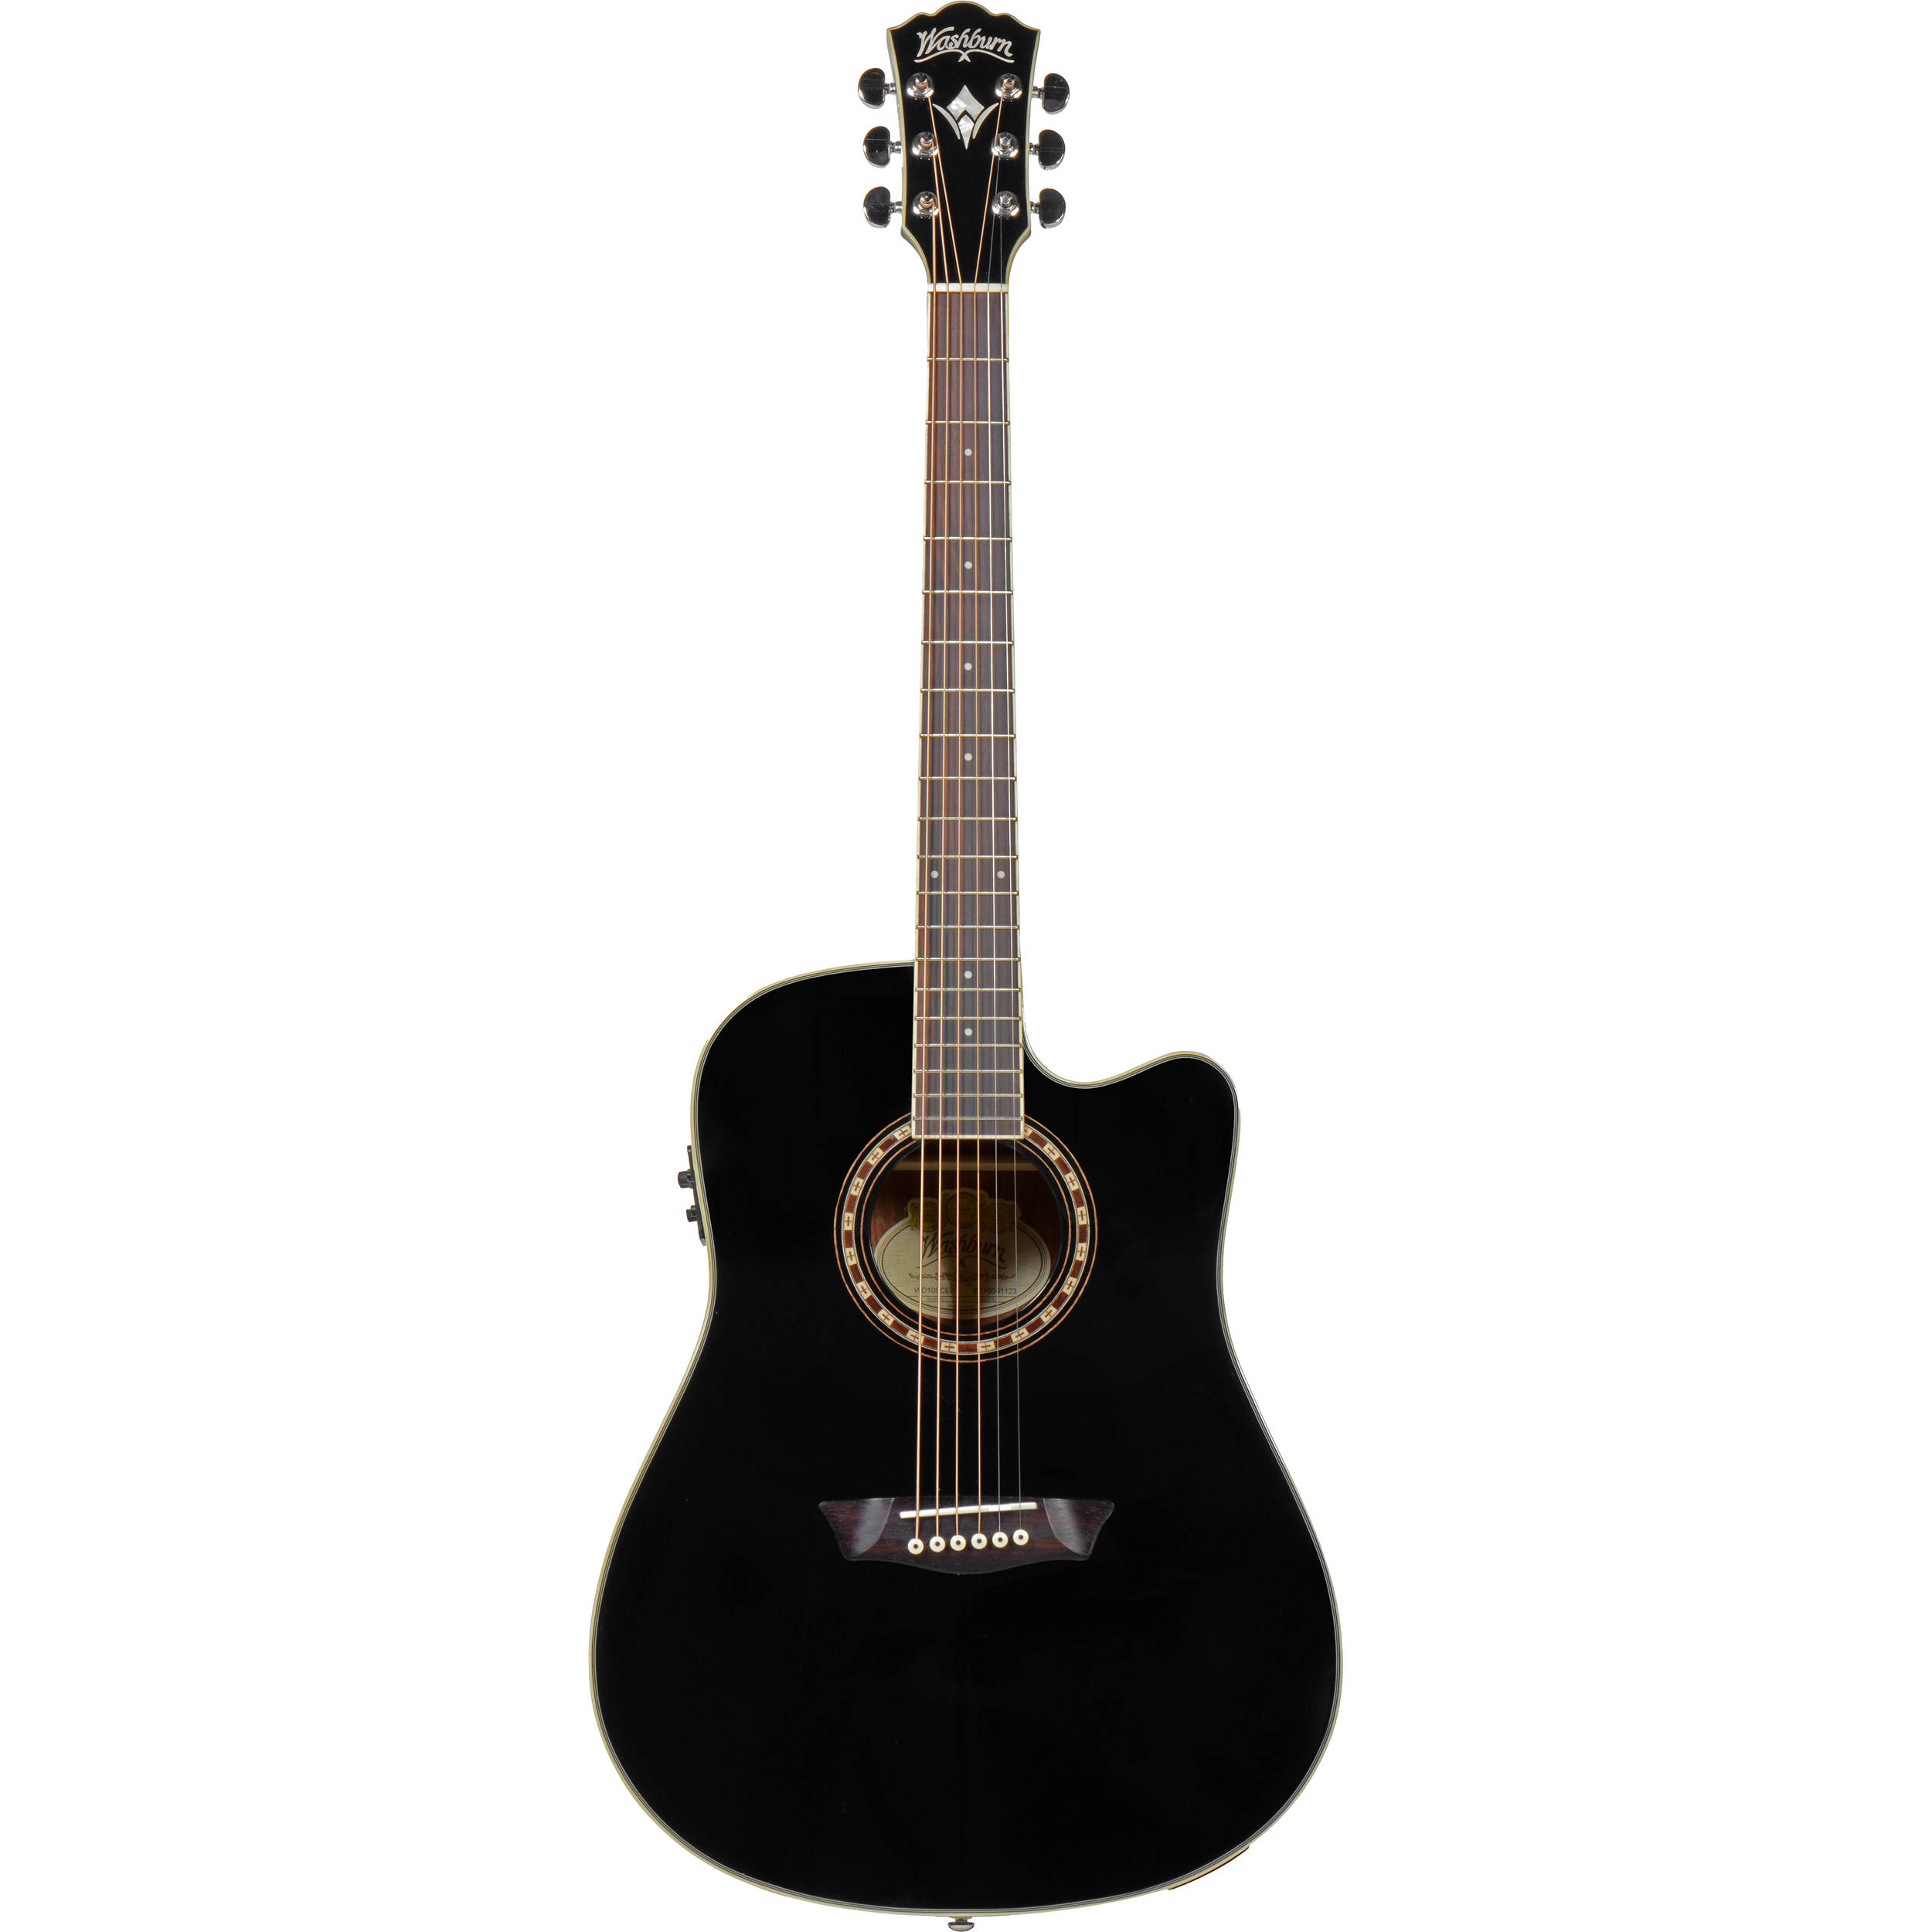 washburn heritage 10 series wd10sceb acoustic electric wd10sceb. Black Bedroom Furniture Sets. Home Design Ideas